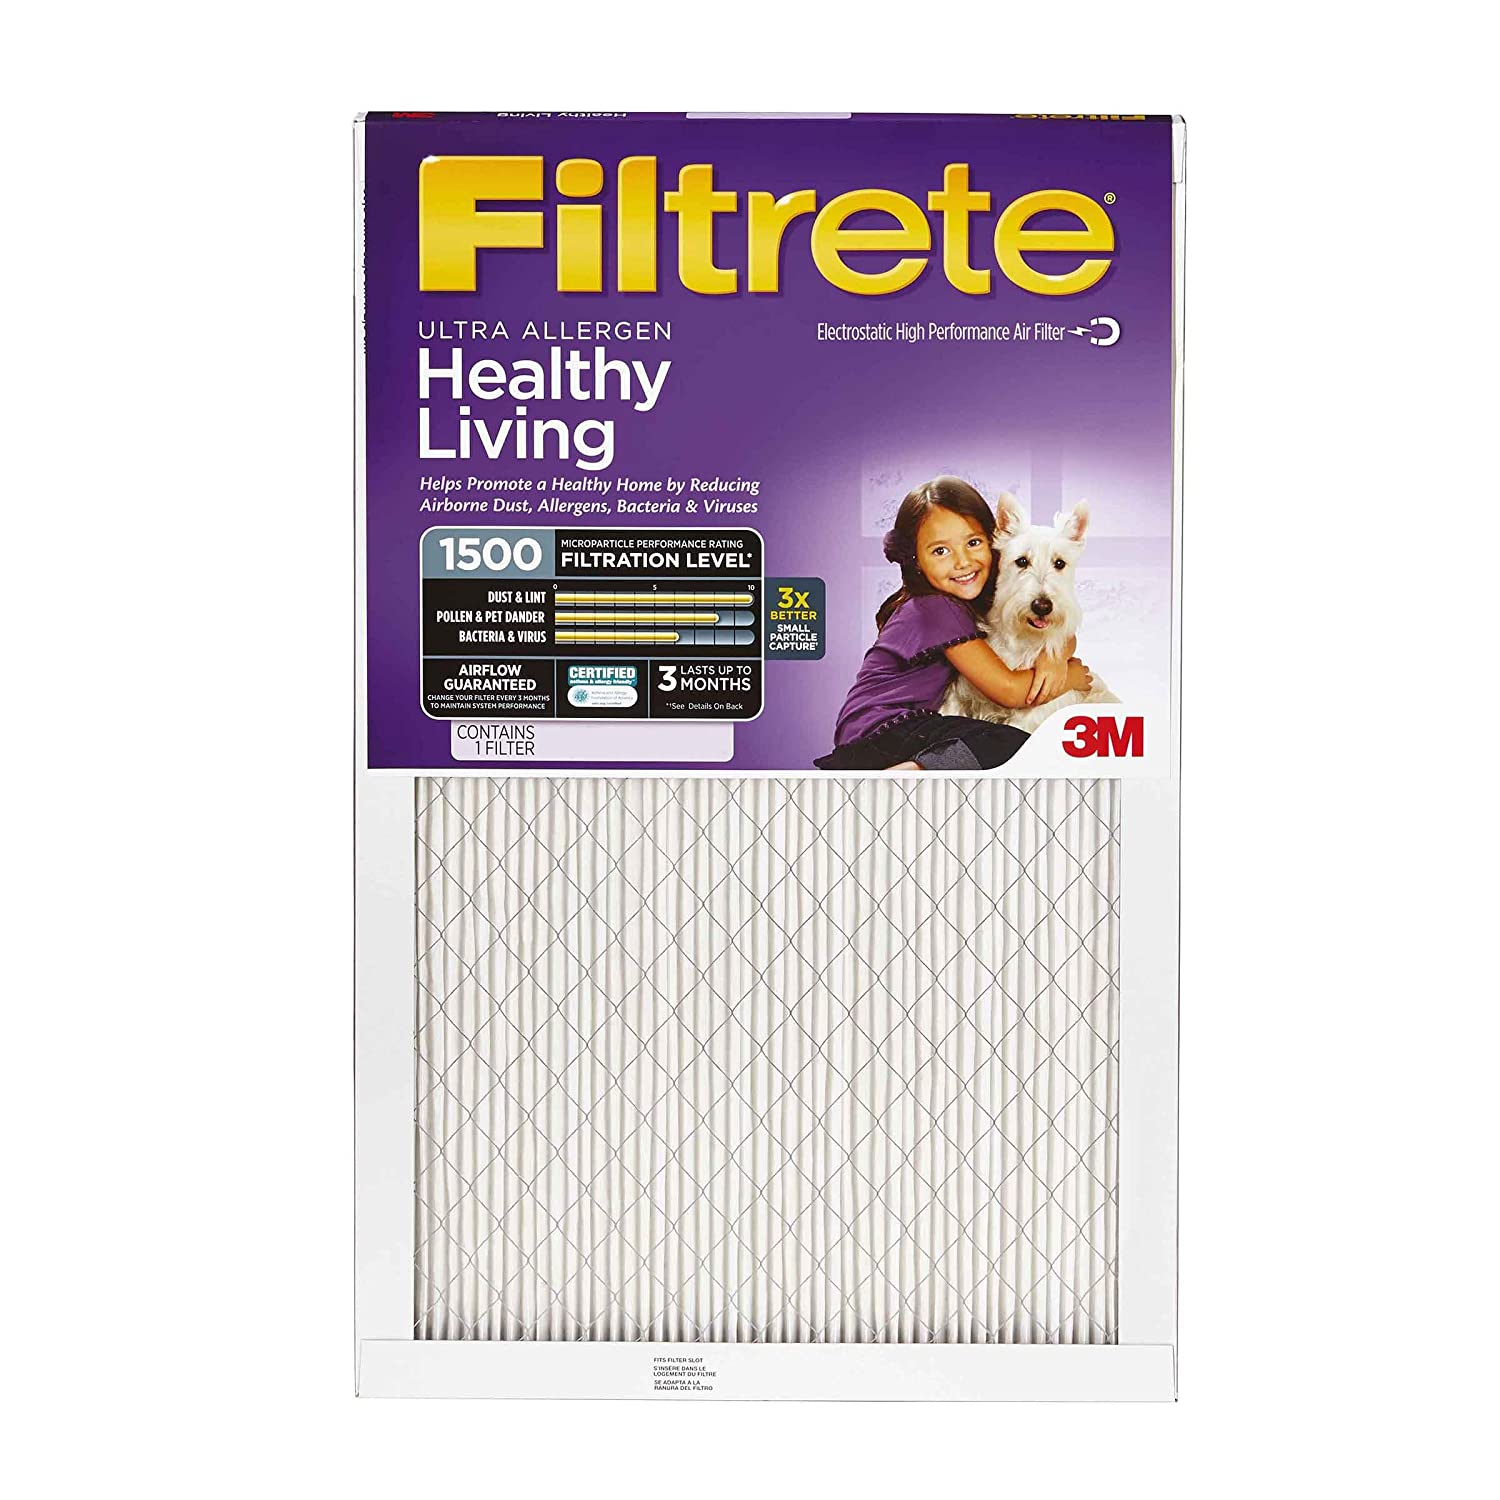 Filtrete 16x20x1, AC Furnace Air Filter, MPR 1500, Healthy Living Ultra Allergen, 4-Pack